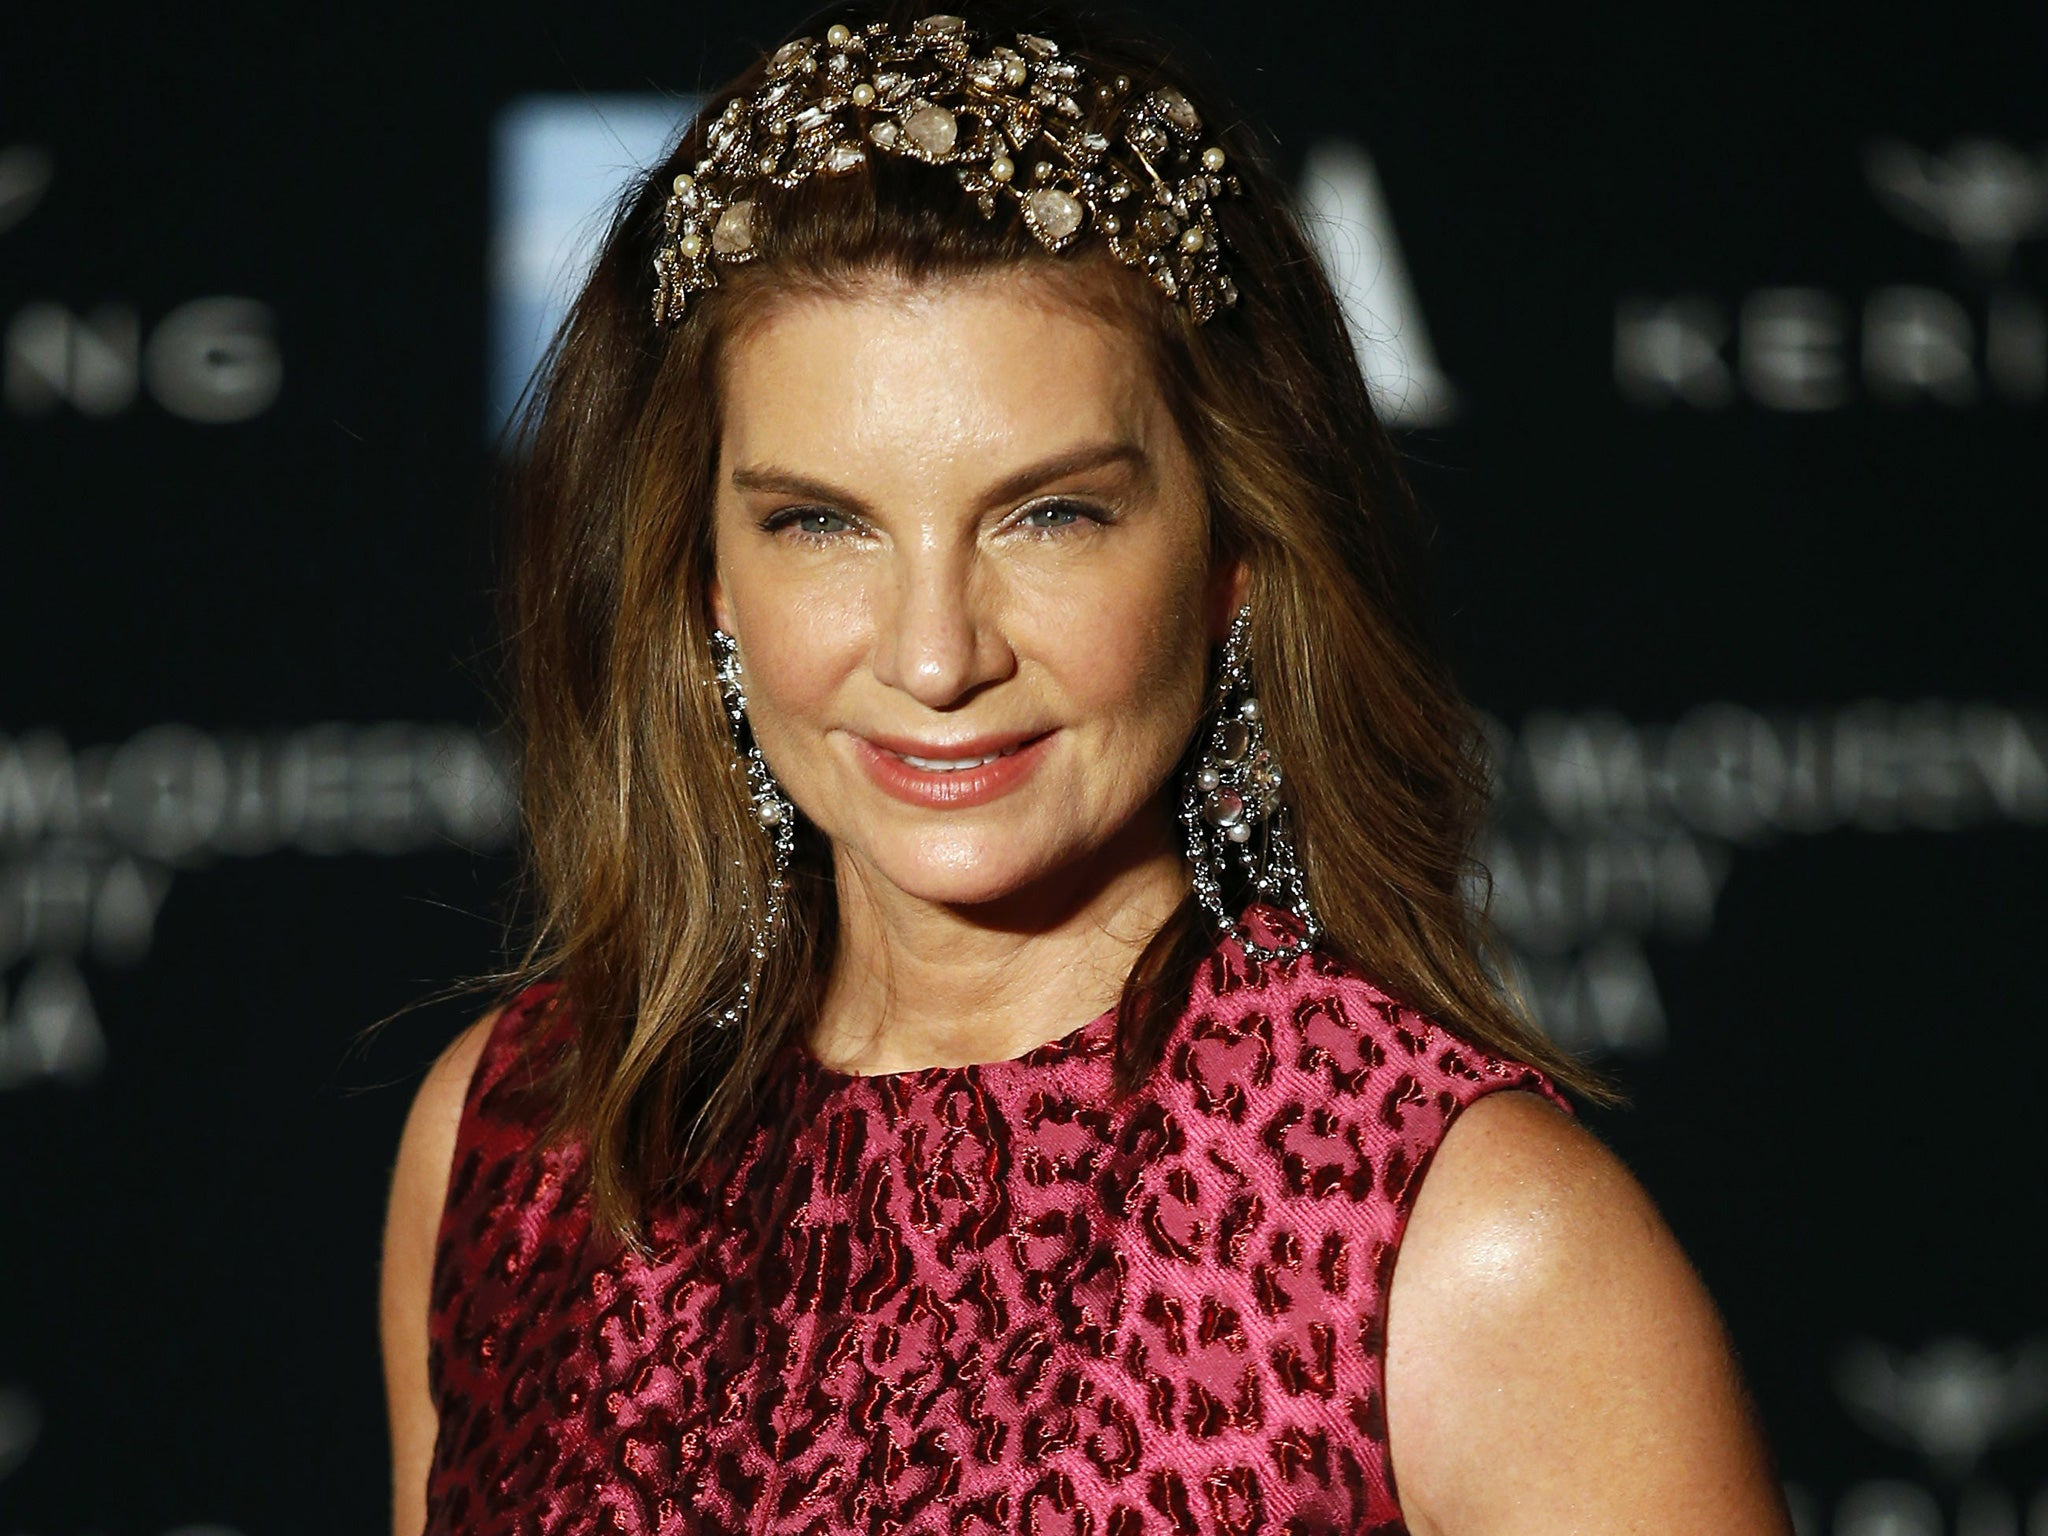 Natalie Massenet ready for next venture after exit from Net-A-Porter | The Independentindependent_brand_ident_LOGOUntitled